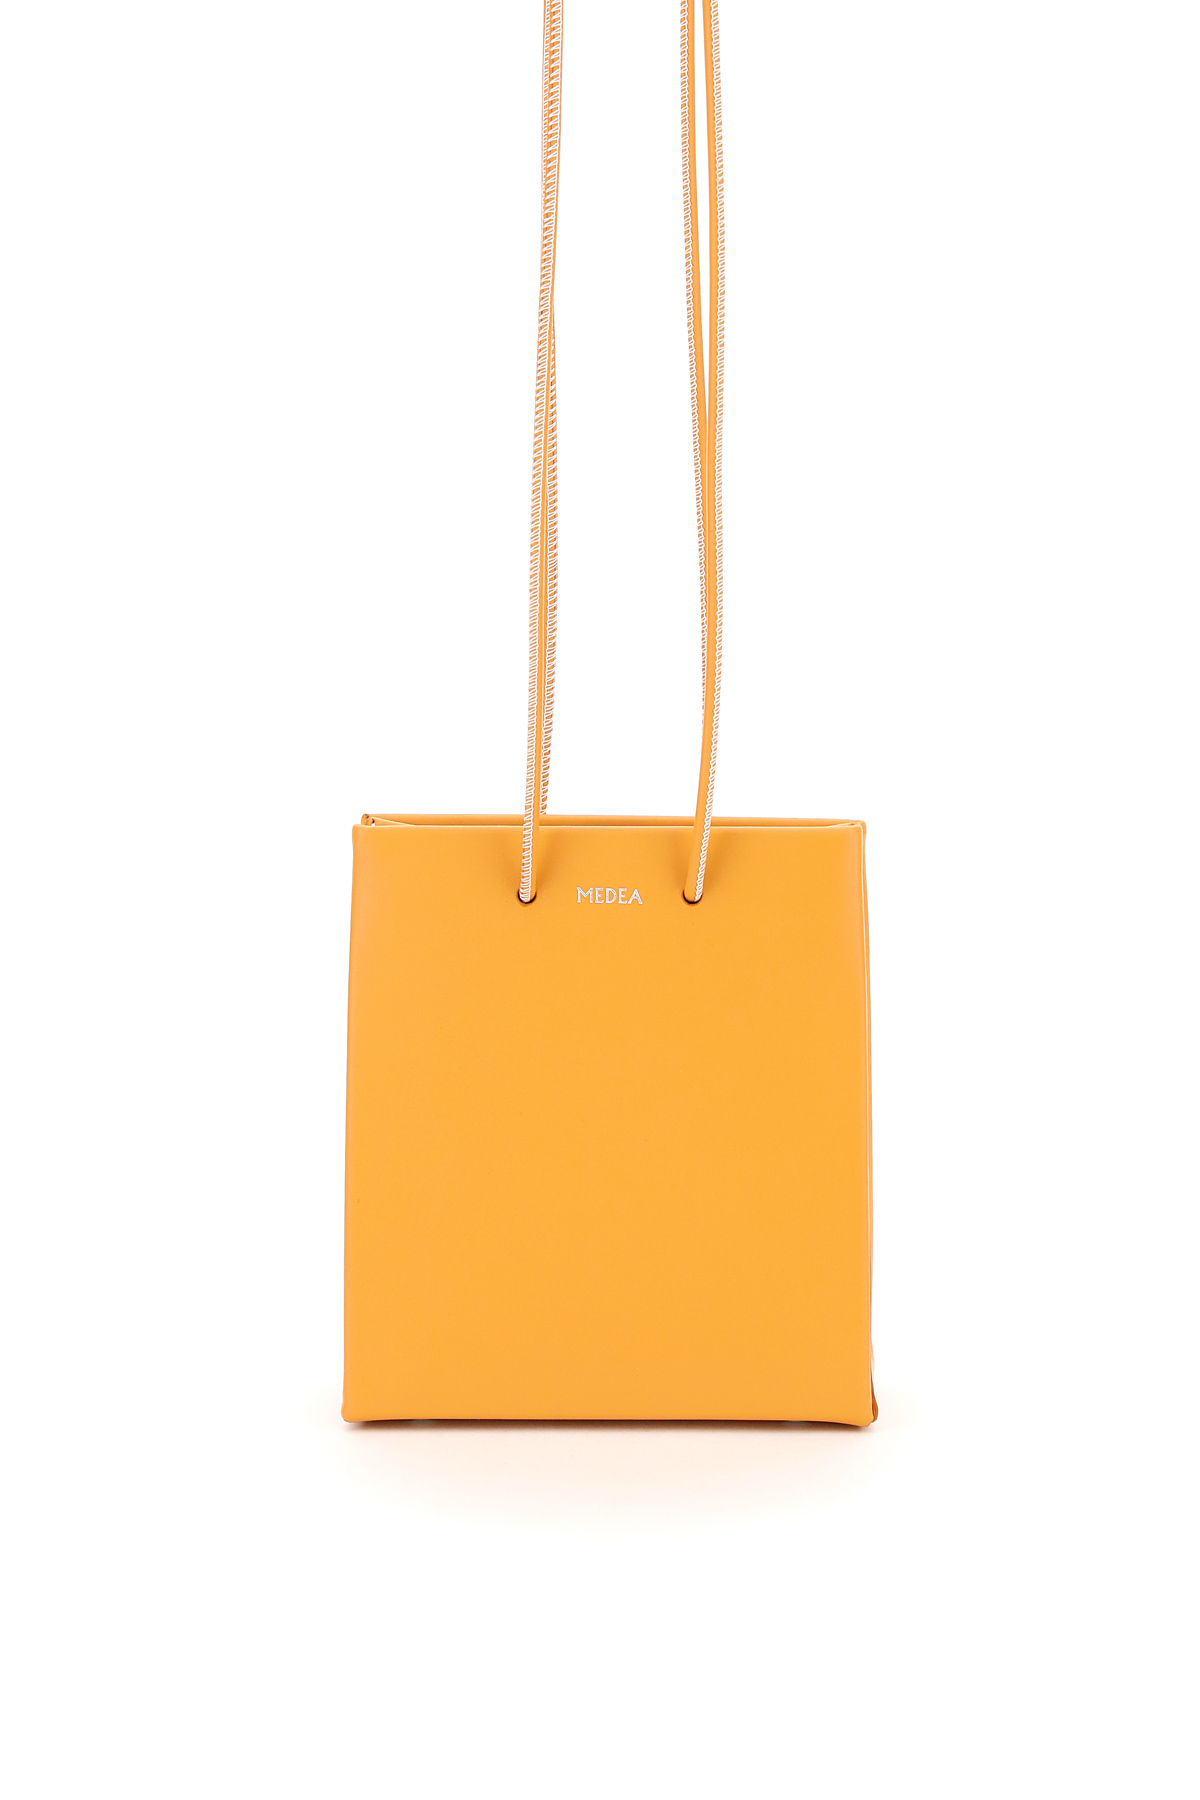 MEDEA LONGSTRAP MEDEA PRIMA BAG LEATHER SHOPPER OS Orange, Yellow Leather